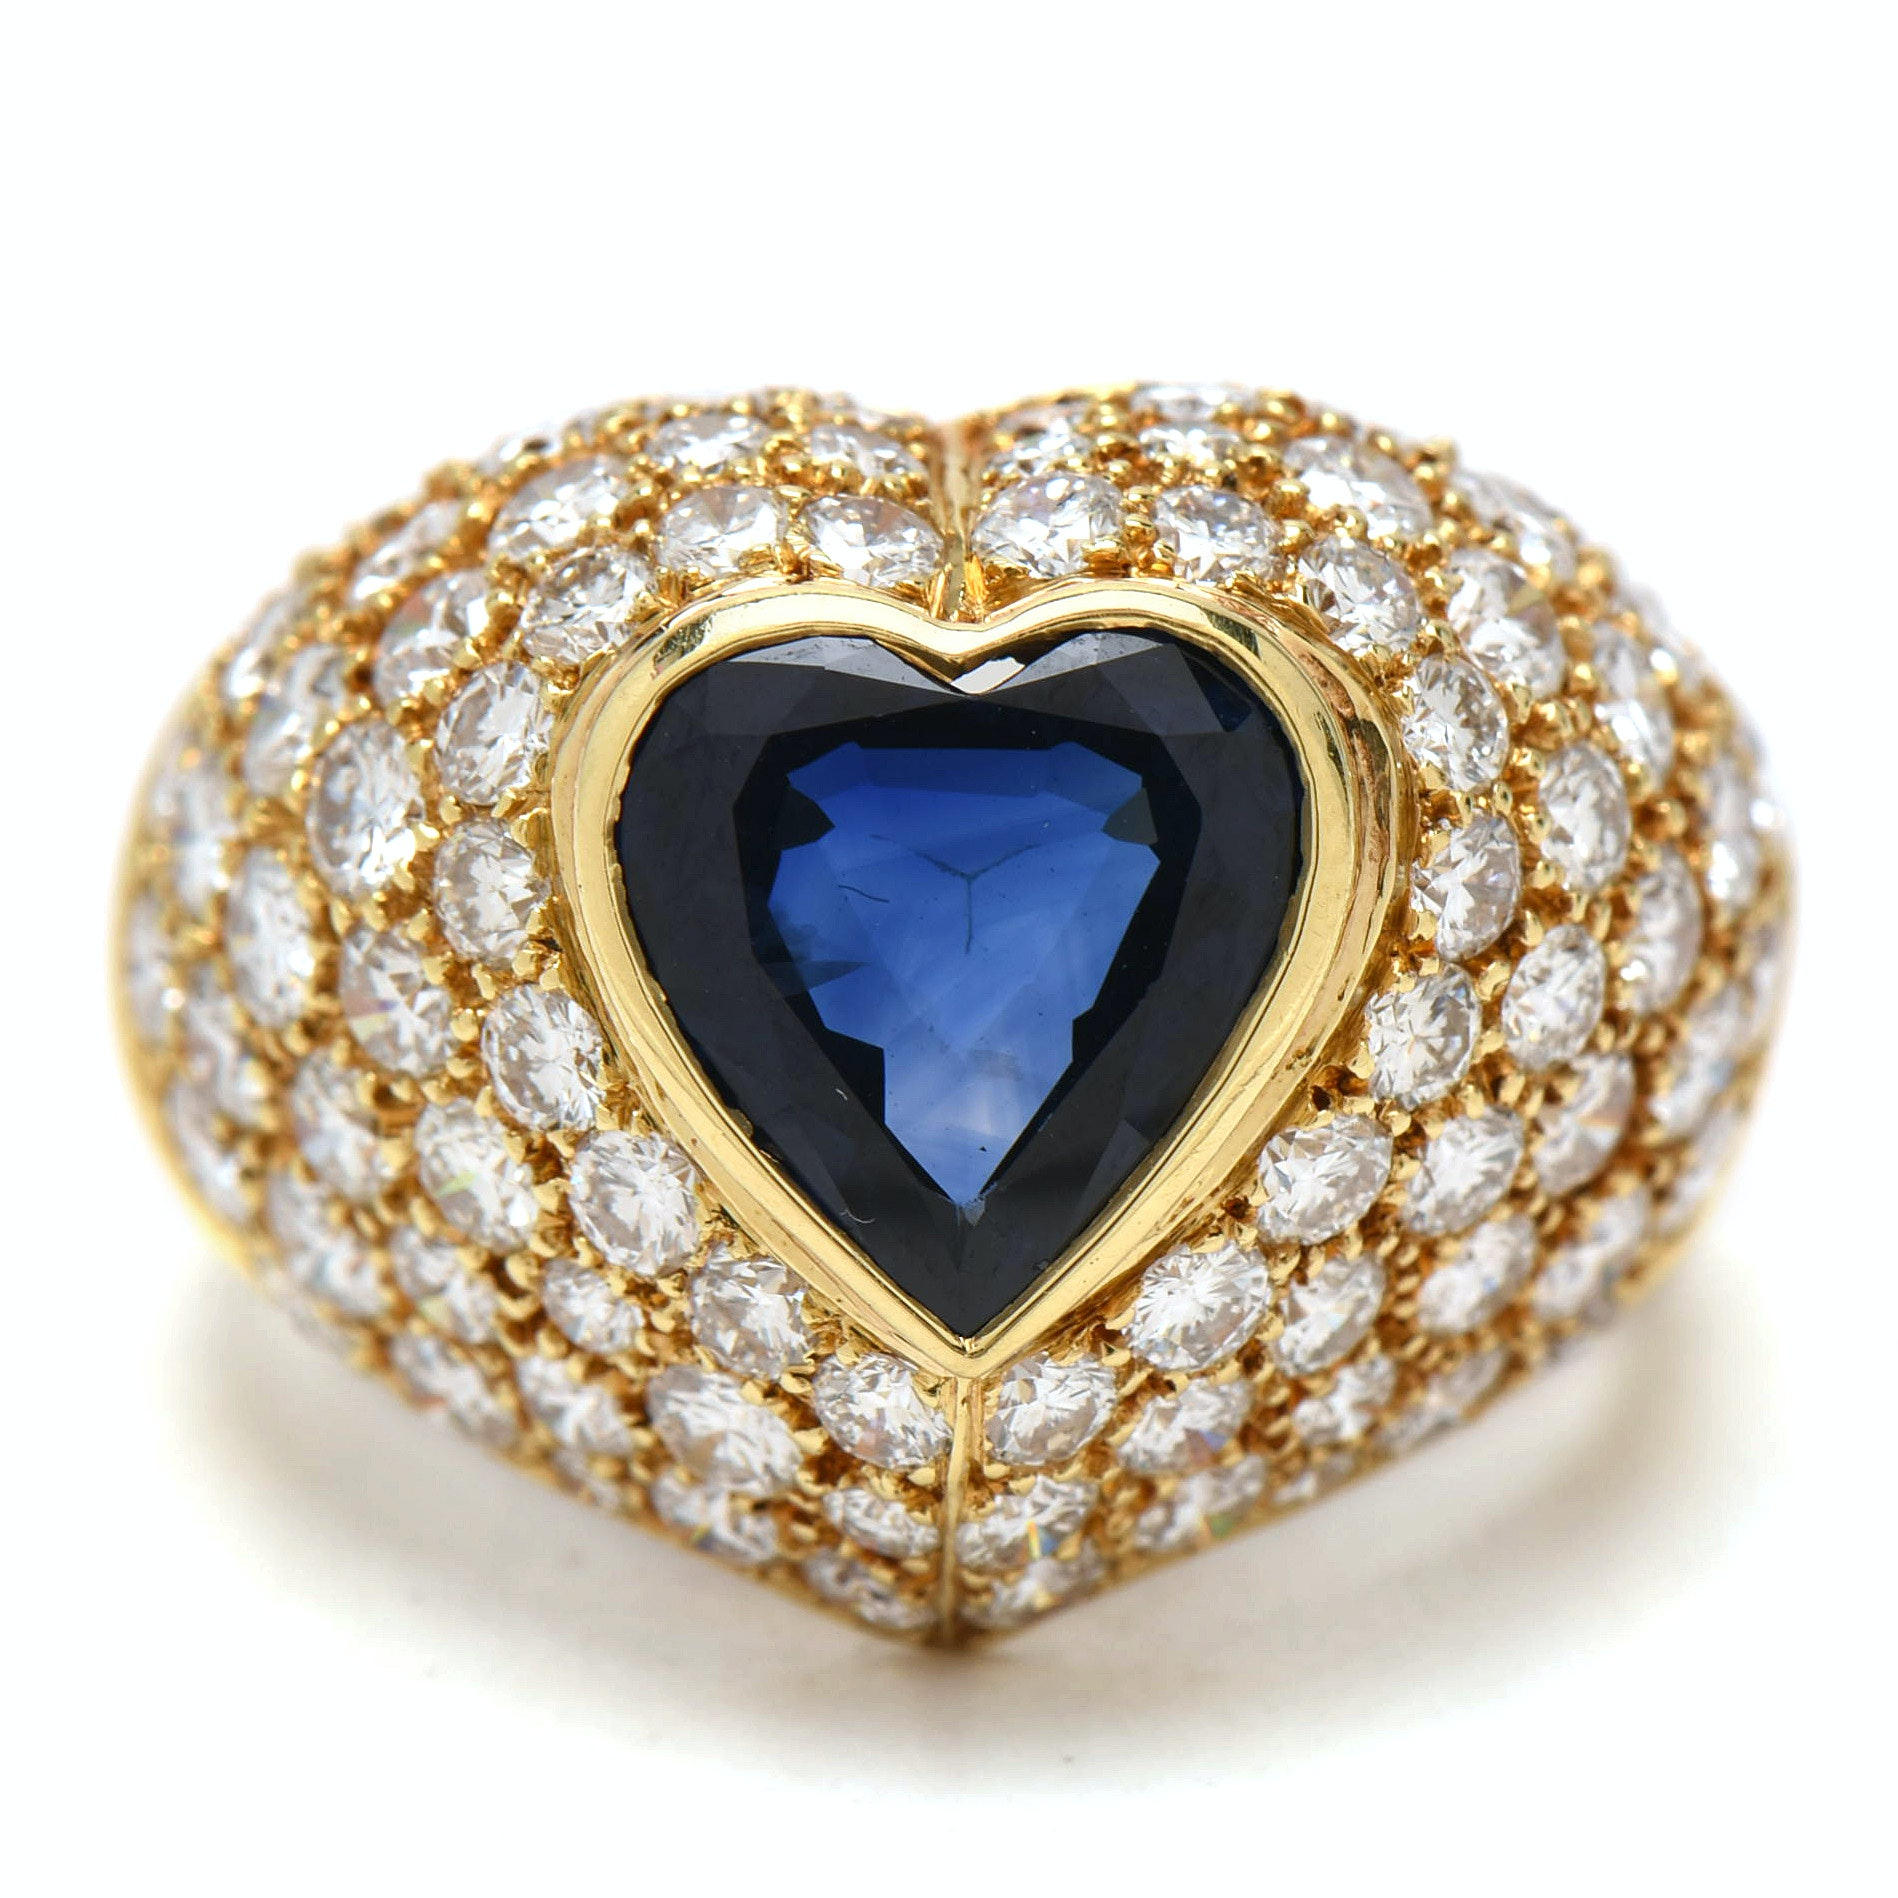 14K Yellow Gold 2.41 CT Heart-Shaped Sapphire and 2.10 CTW Diamond Ring